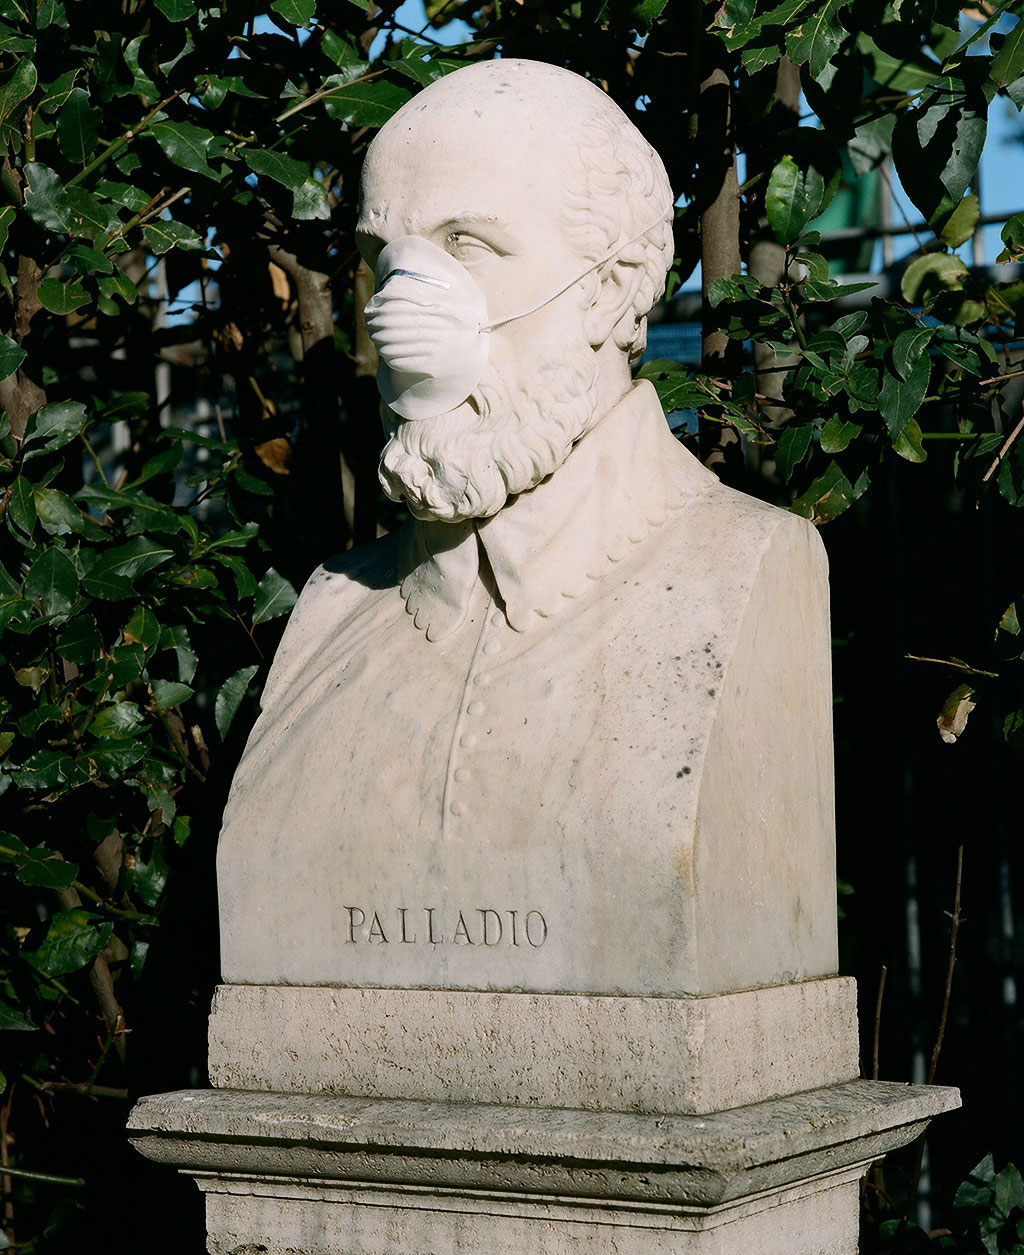 Bust of architect Andrea Palladio (1508-1580) at Villa Borghese gardens, Rome. Photo © Federico Pestilli.